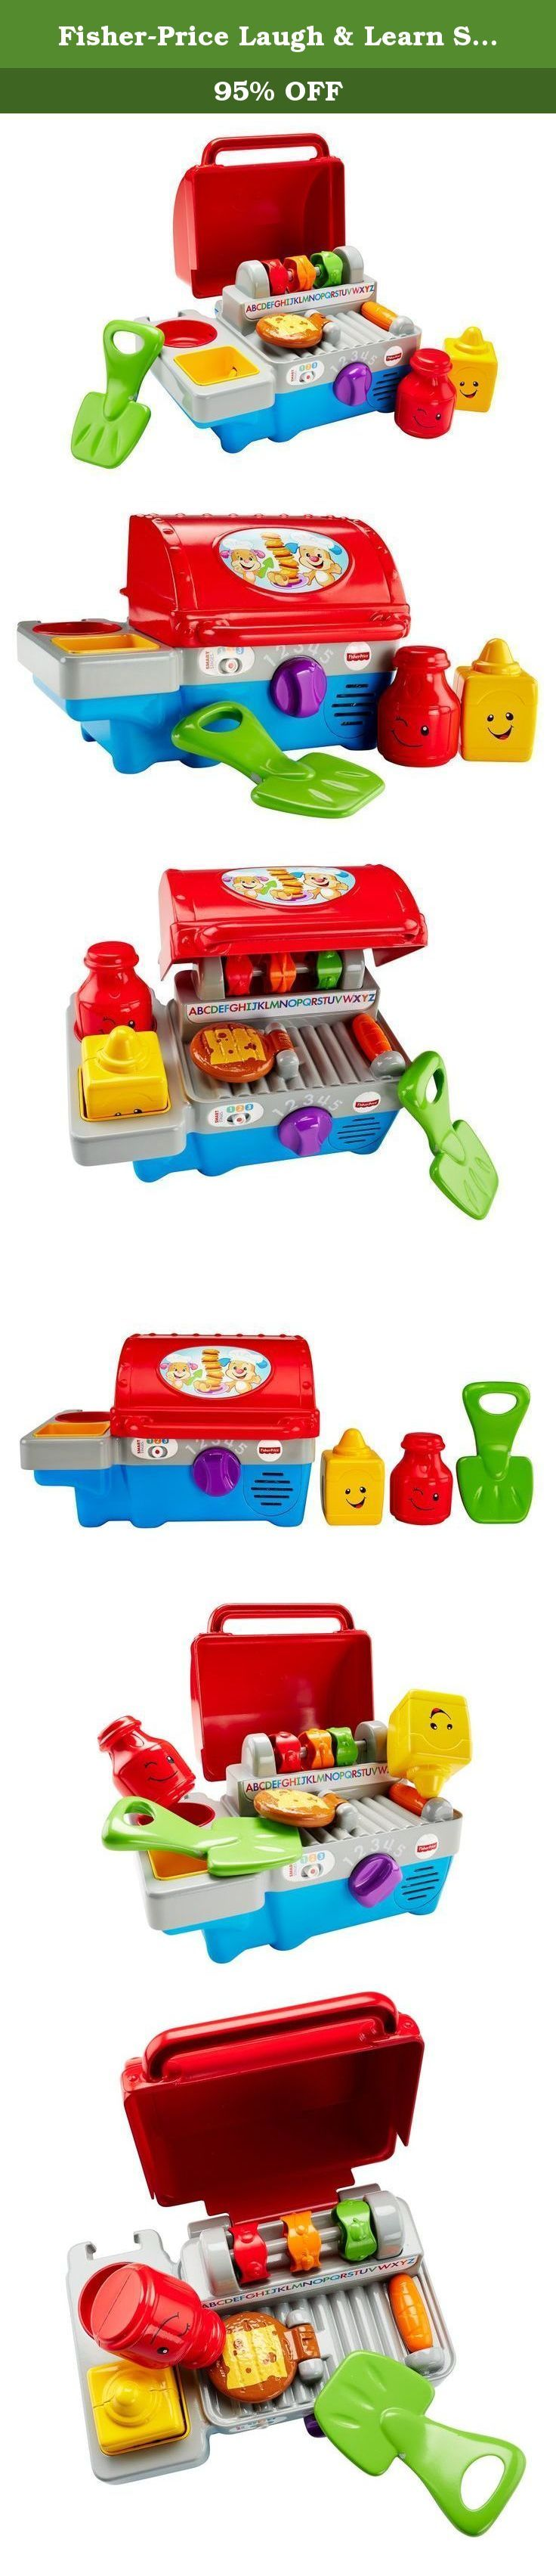 Fisher-Price Laugh & Learn Smart Stages Grill. What's cooking'? This toy grill fires up baby's imagination with lots of role play activities and fun-filled learning. Open the lid, turn the dial, flip the burger or sort the ketchup & mustard shapes to activate sing-along songs, silly sounds, words & fun phrases. These 5 activations teach letters, numbers, colors, manners, opposites & more - some in Spanish. And your little chef will love the finger food - there's a spinning veggie skewer…